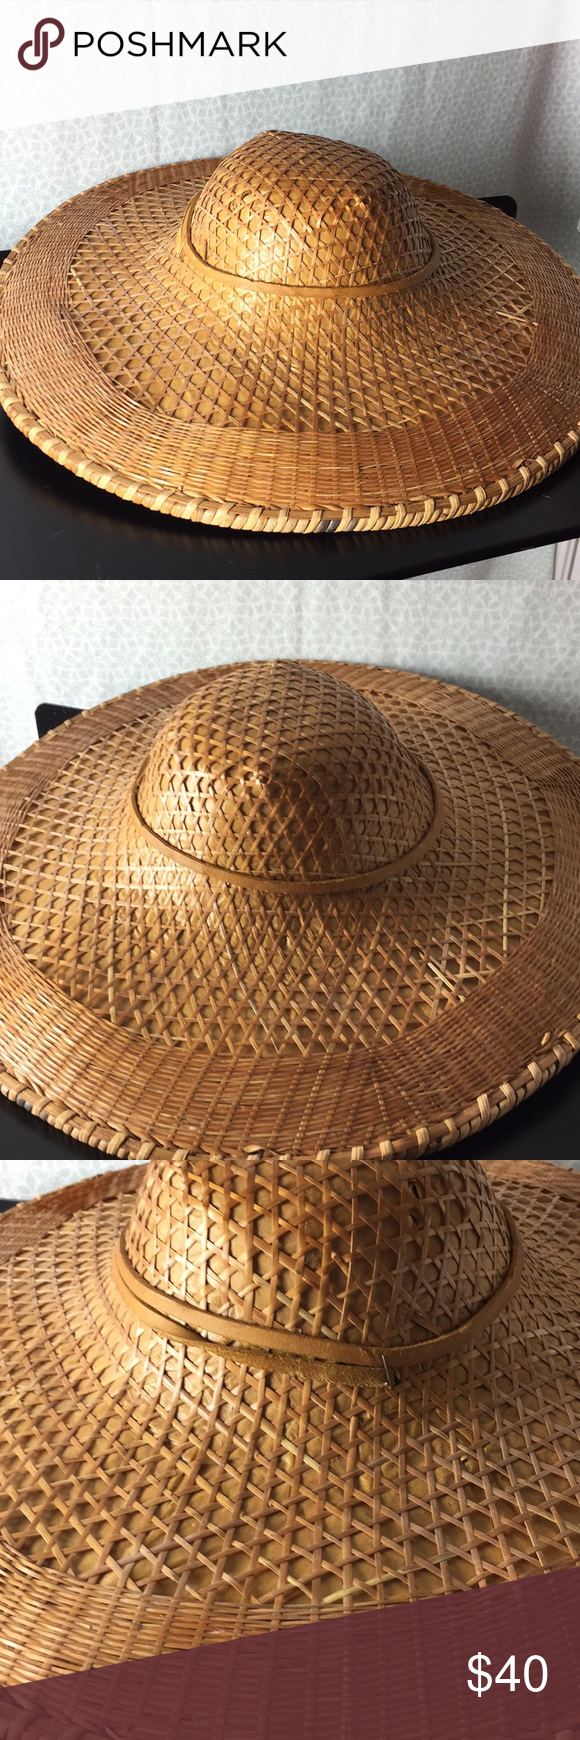 Vintage Asian Rice Paddy Hat Vintage Straw Woven Asian Rice Paddy Hat Great Con Vintage Asian Rice Paddy Hat Vinta Asian Rice Asian Decor Bathroom Asian